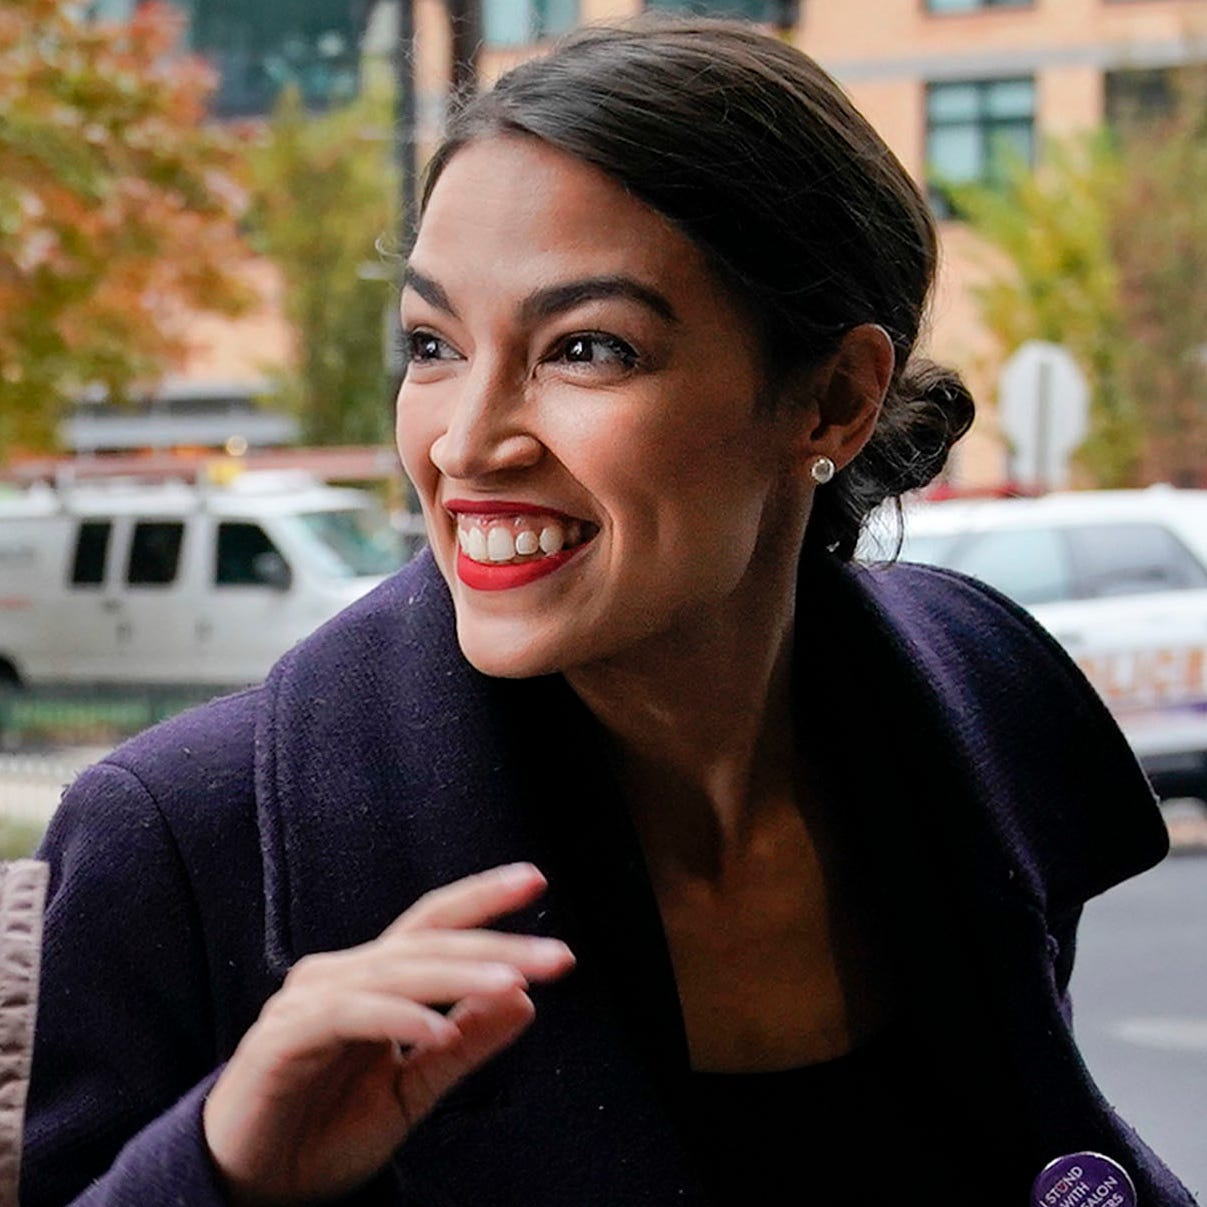 Rep.-elect Alexandria Ocasio-Cortez, D-NY., arrives for orientation for new members of Congress, Nov. 13, 2018, in Washington.